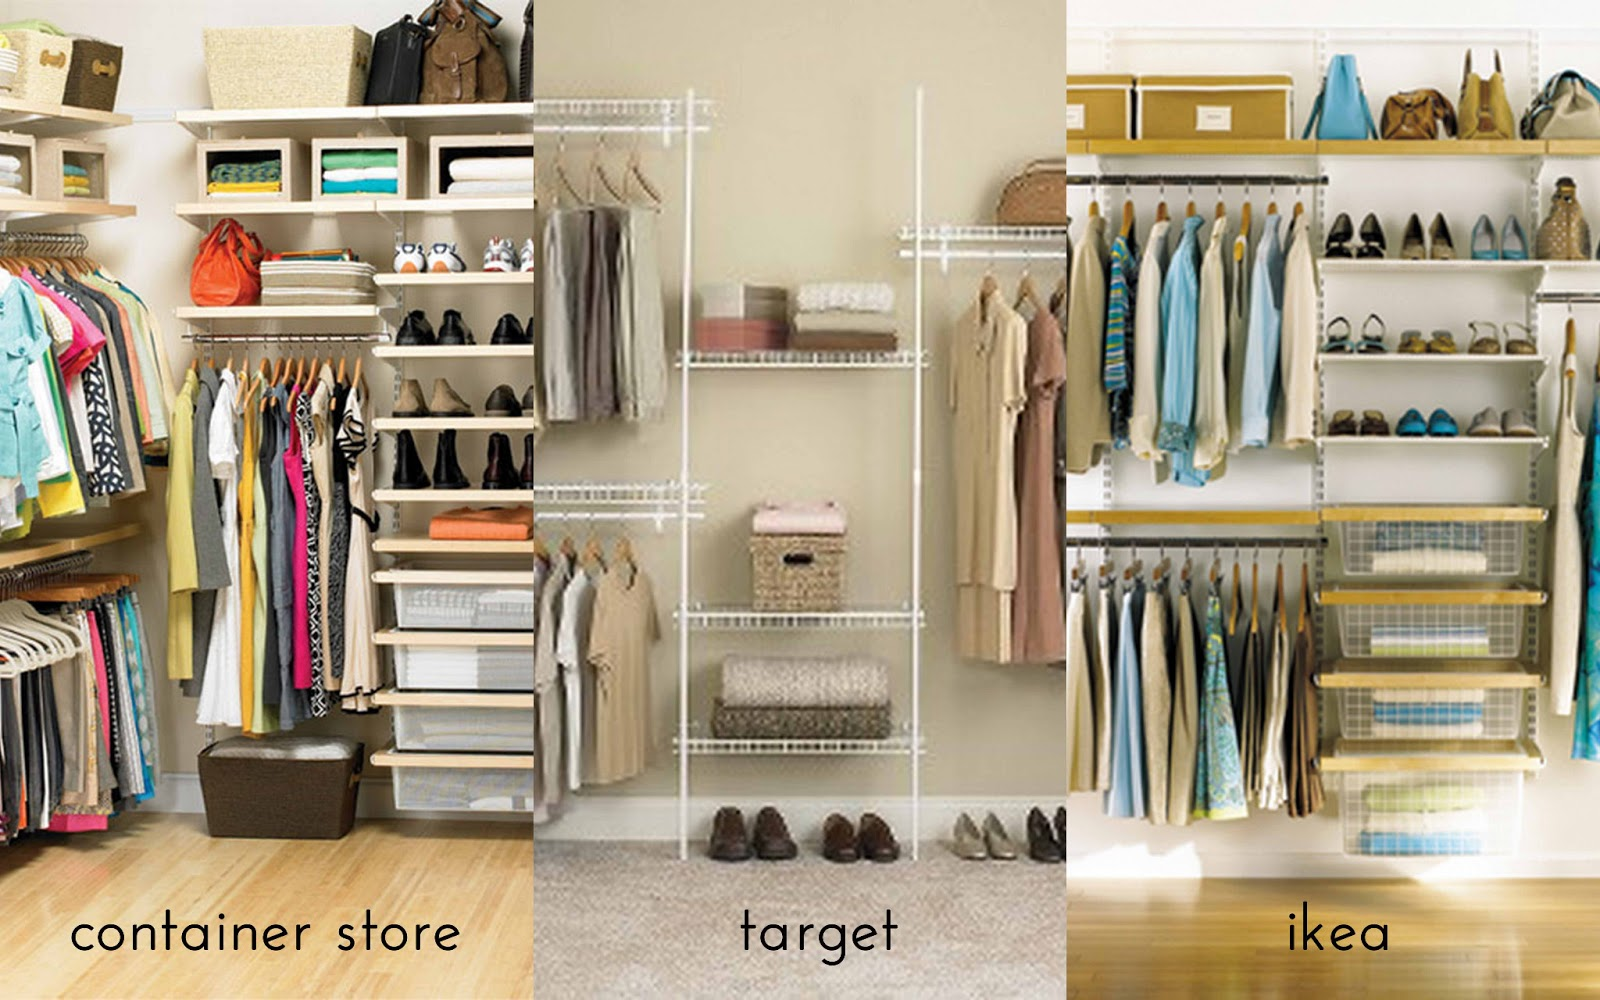 wardrobe storage wardrobes concepts organizer closet sale clothing furniture custom cabinets container corner bedroom store small design spaces systems for closets